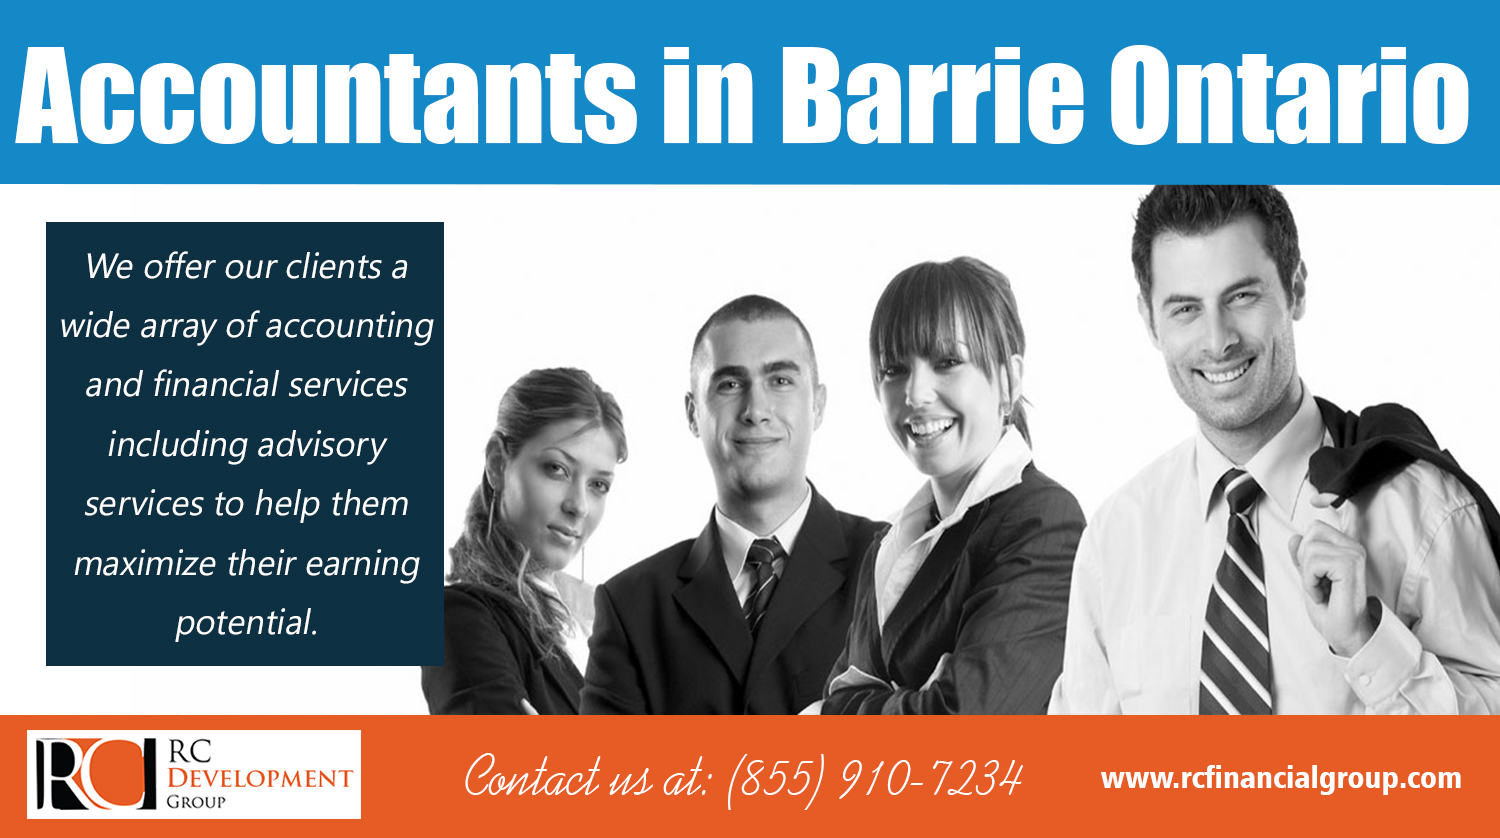 Accountants in Barrie Ontario